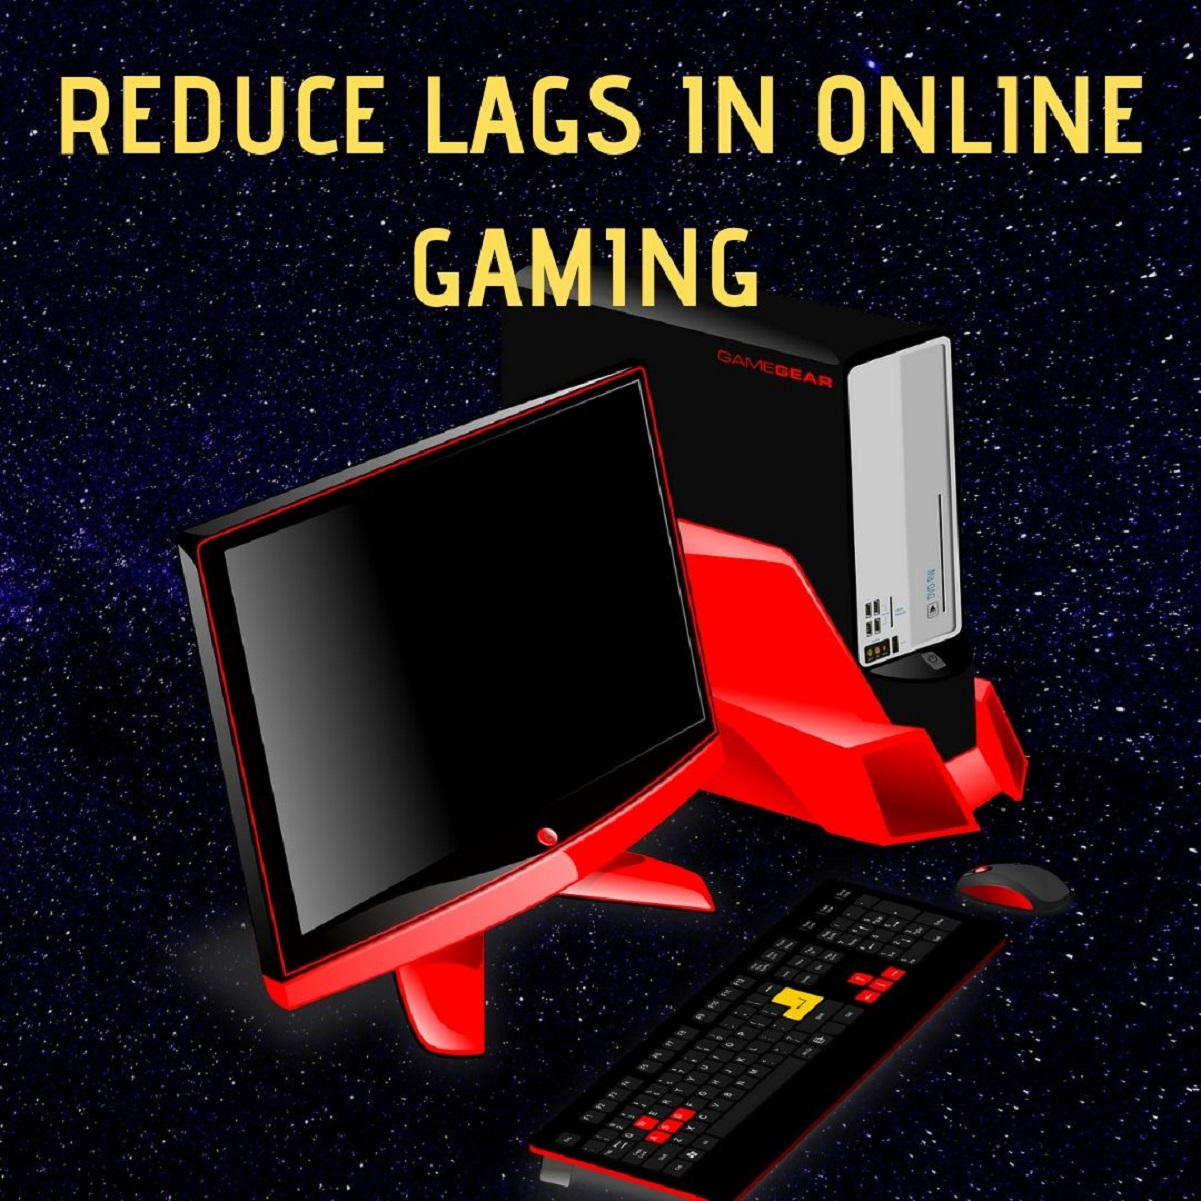 How to Reduce Lag in Online Gaming